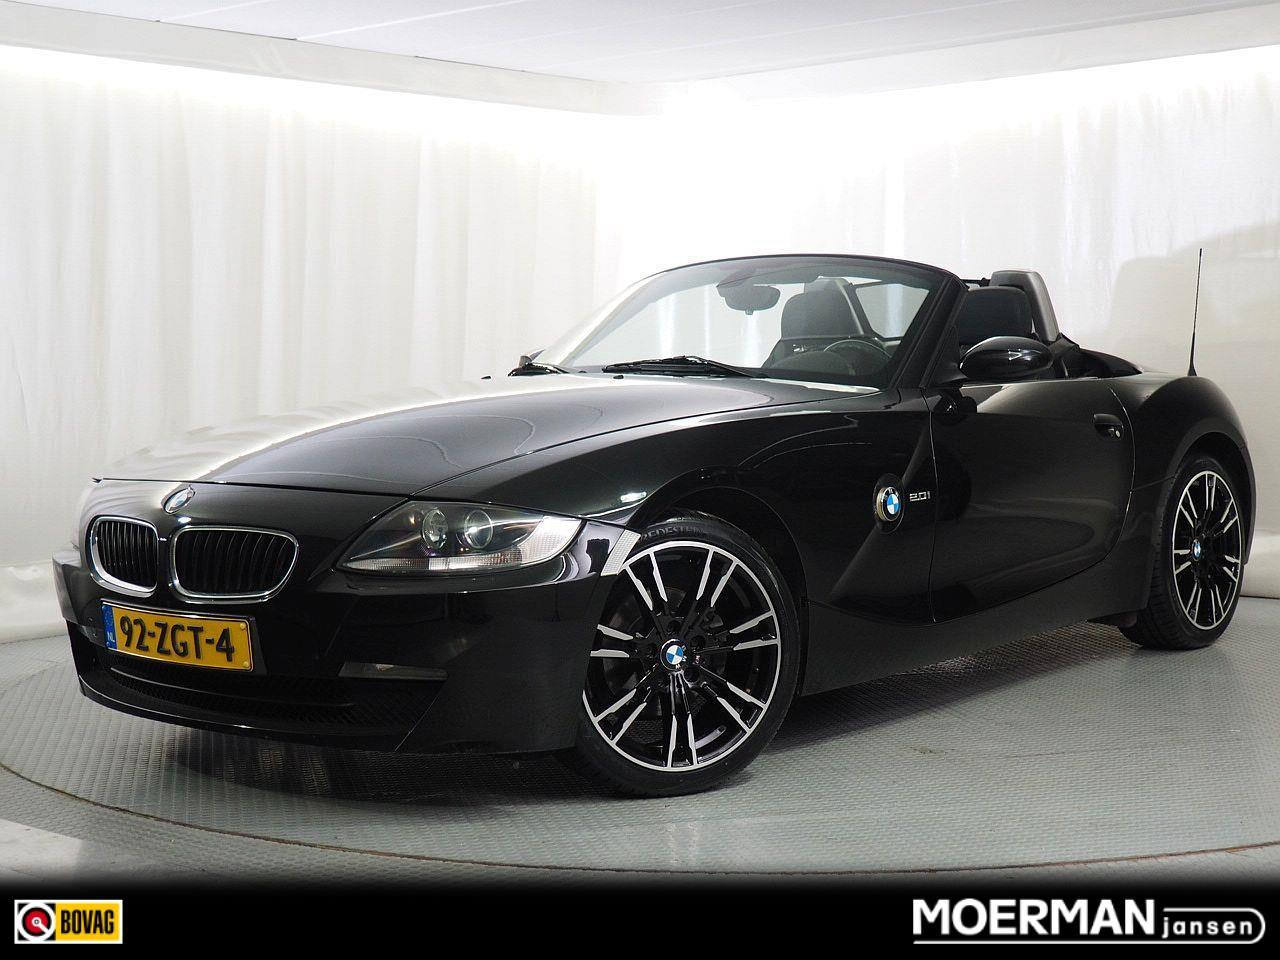 Bmw Z4 Roadster 2.0i executive / leder / nl auto / 64.000km